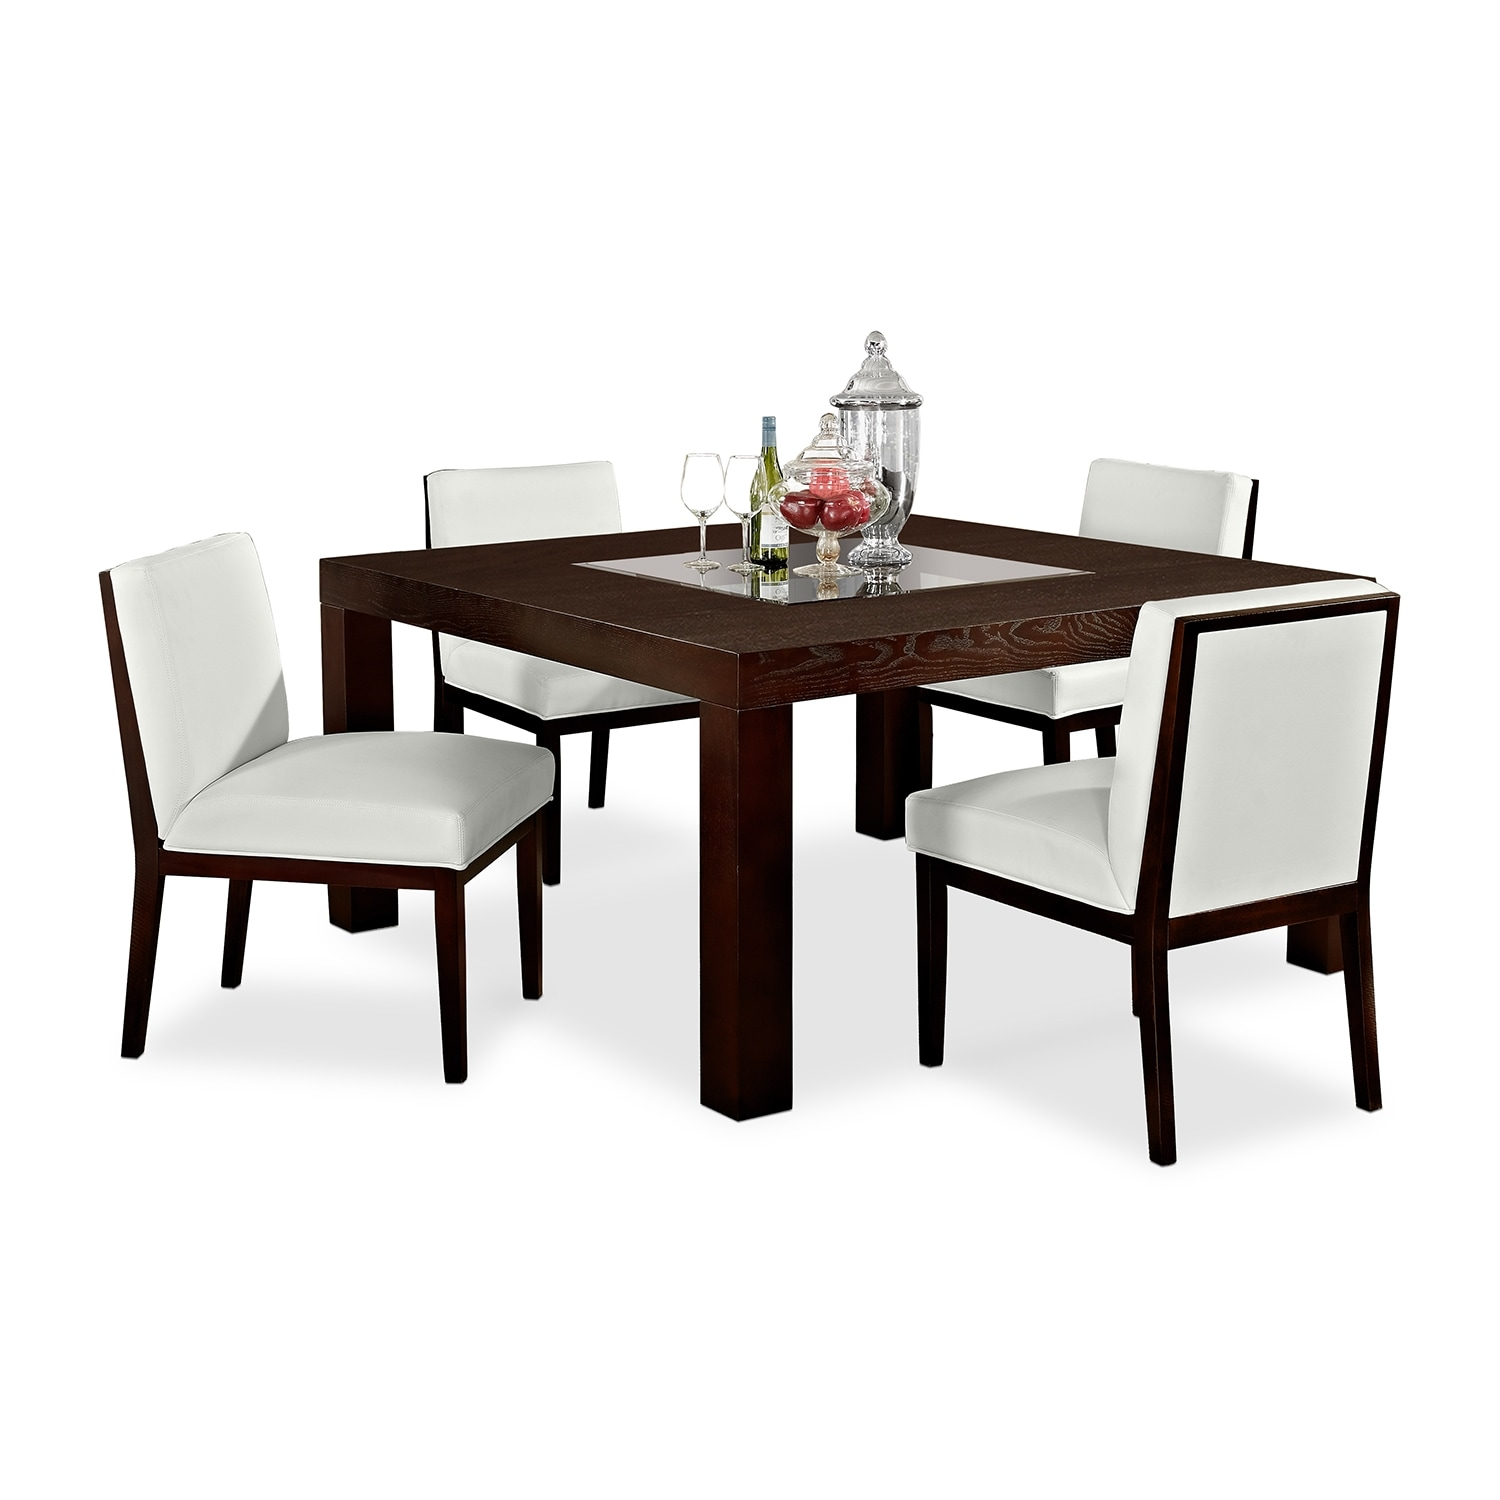 Dining Table: Dining Table Specials